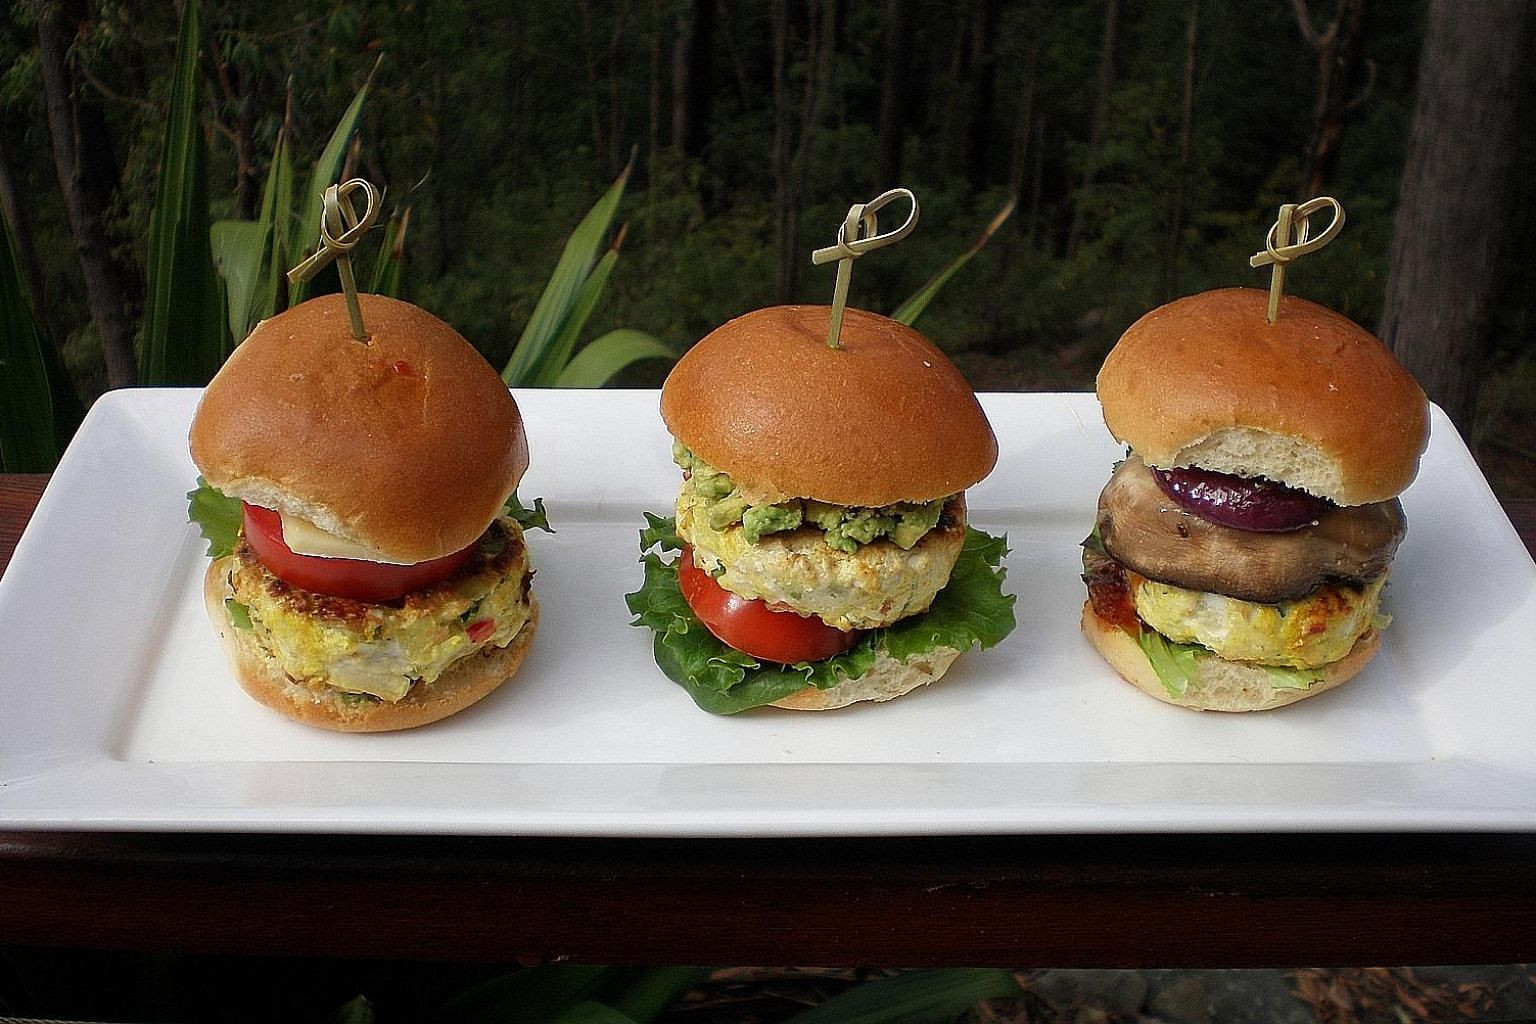 Spicy chicken sliders with (from left) cheese, tomato, sweet chilli sauce and coriander; mashed avocado, tomato and lettuce; and red onion, sauteed mushroom, chutney and lettuce.